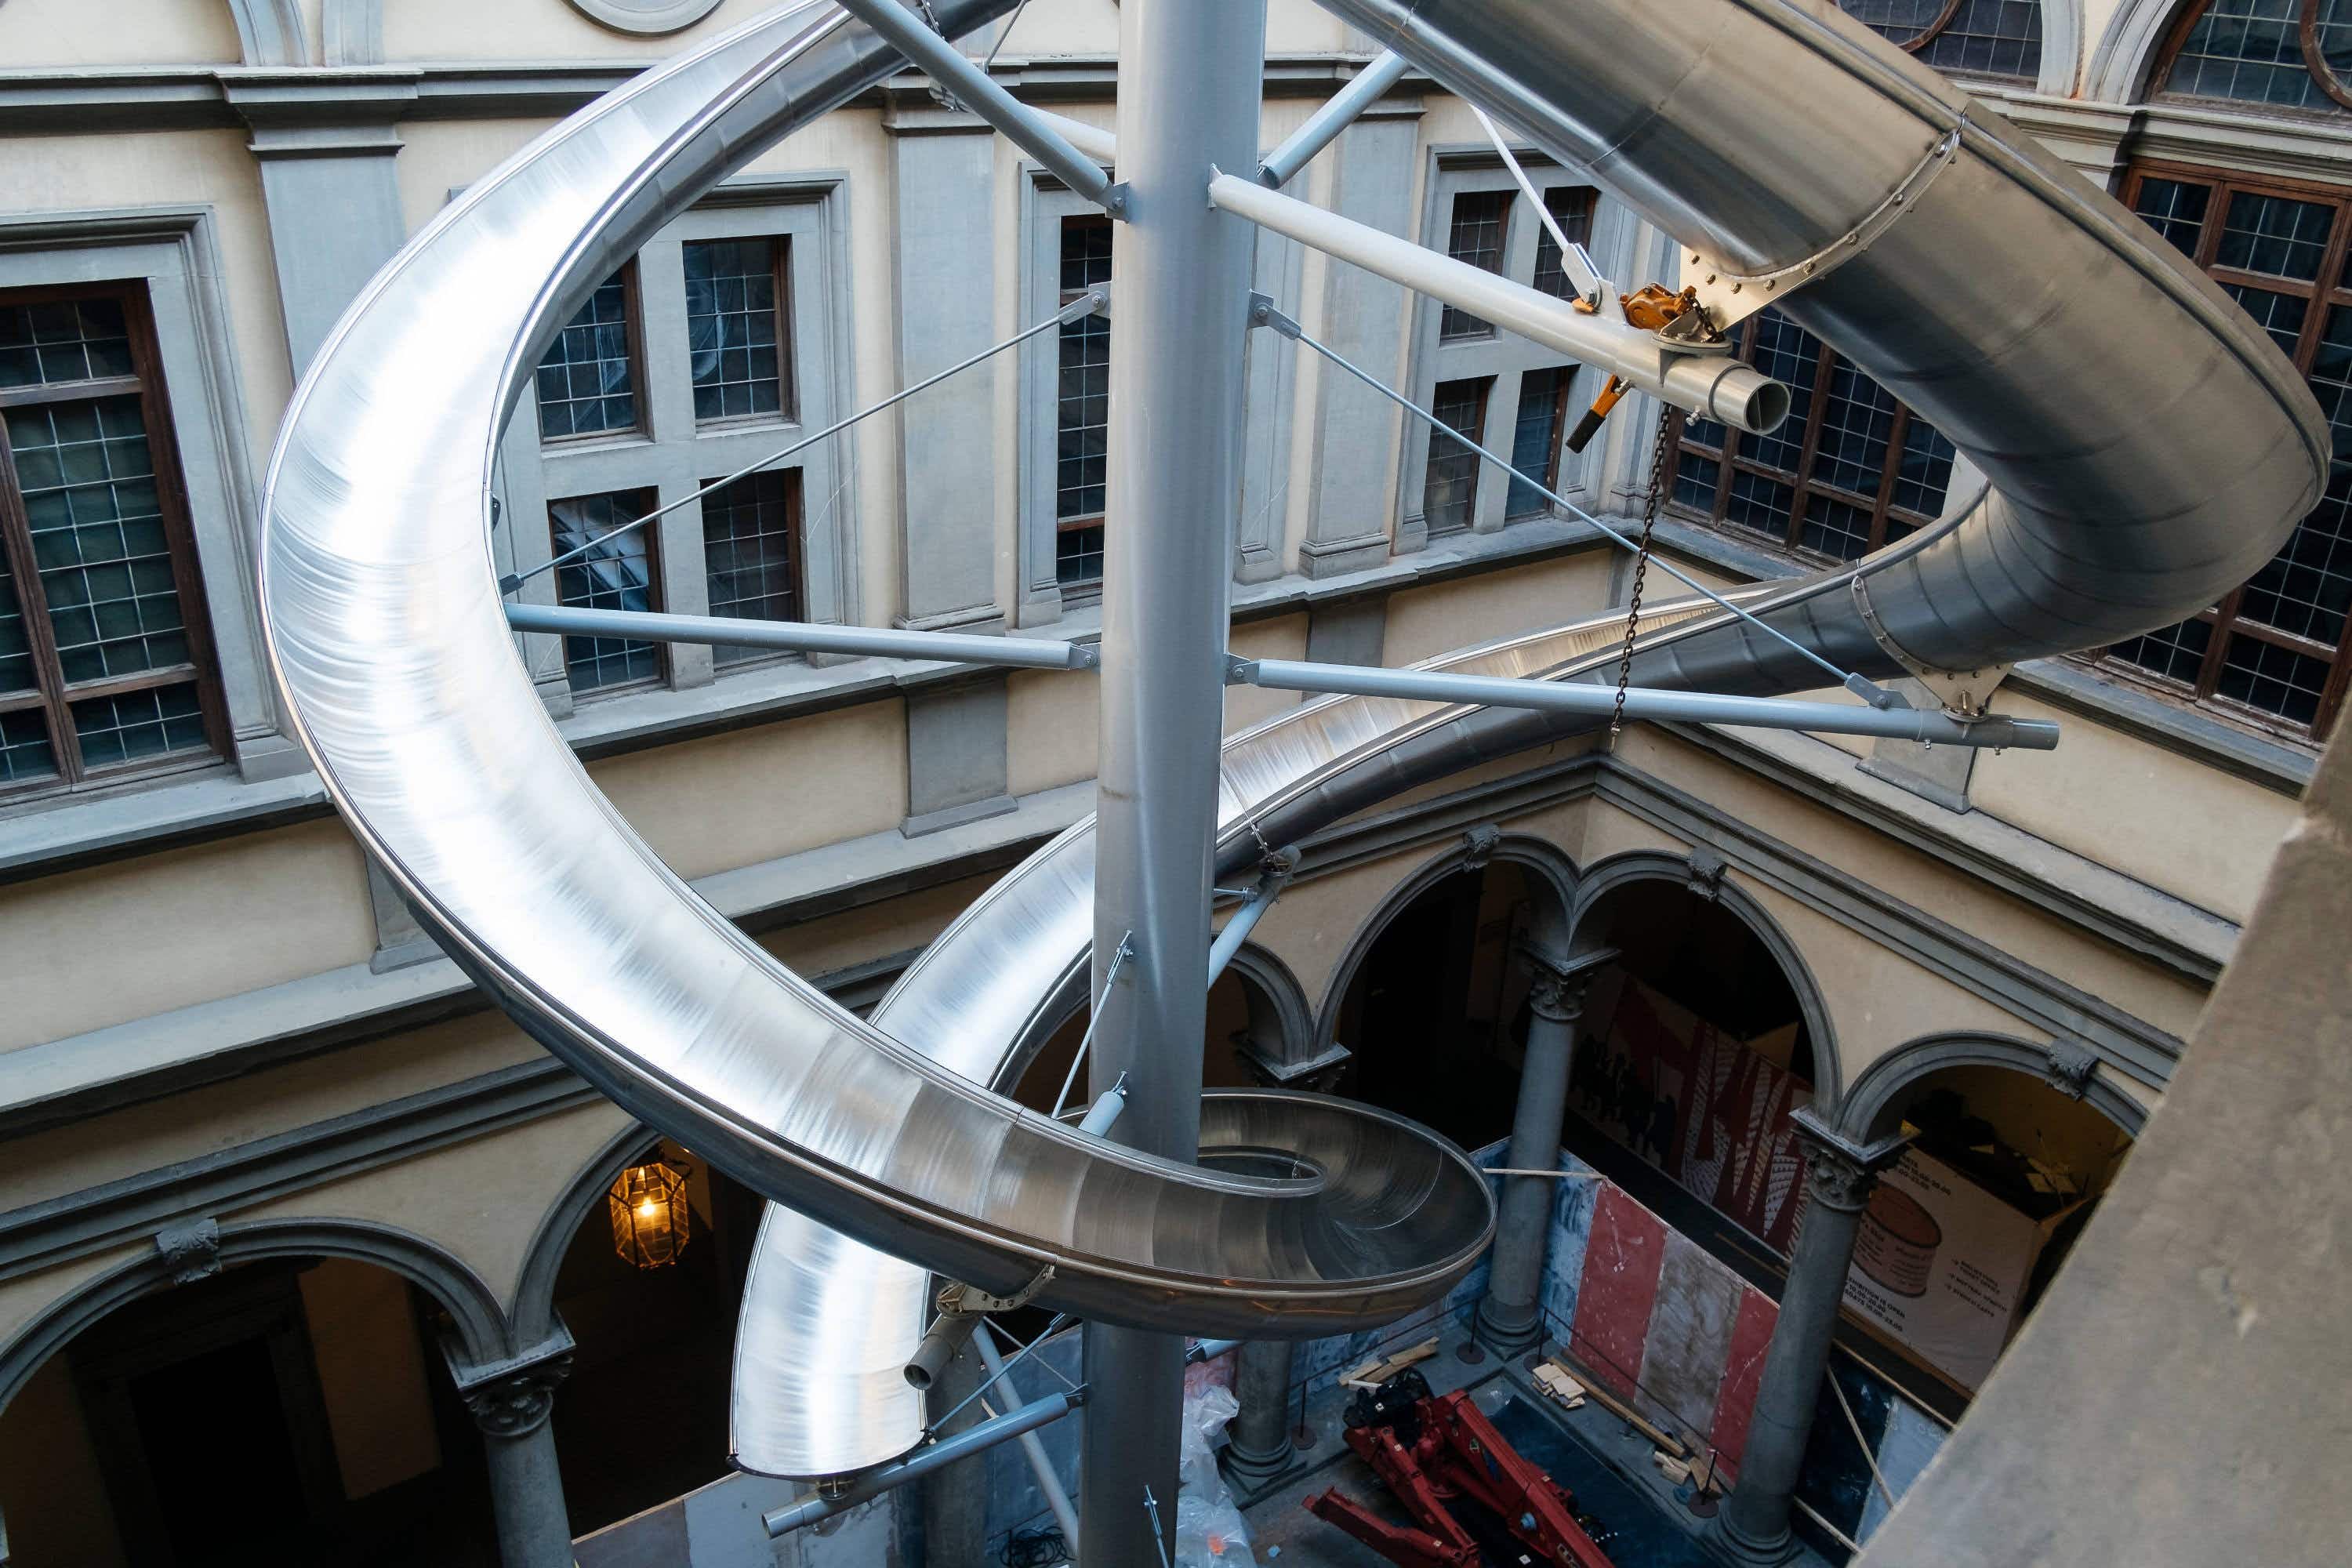 Slide through a 15th-century Florence palazzo as part of an art installation